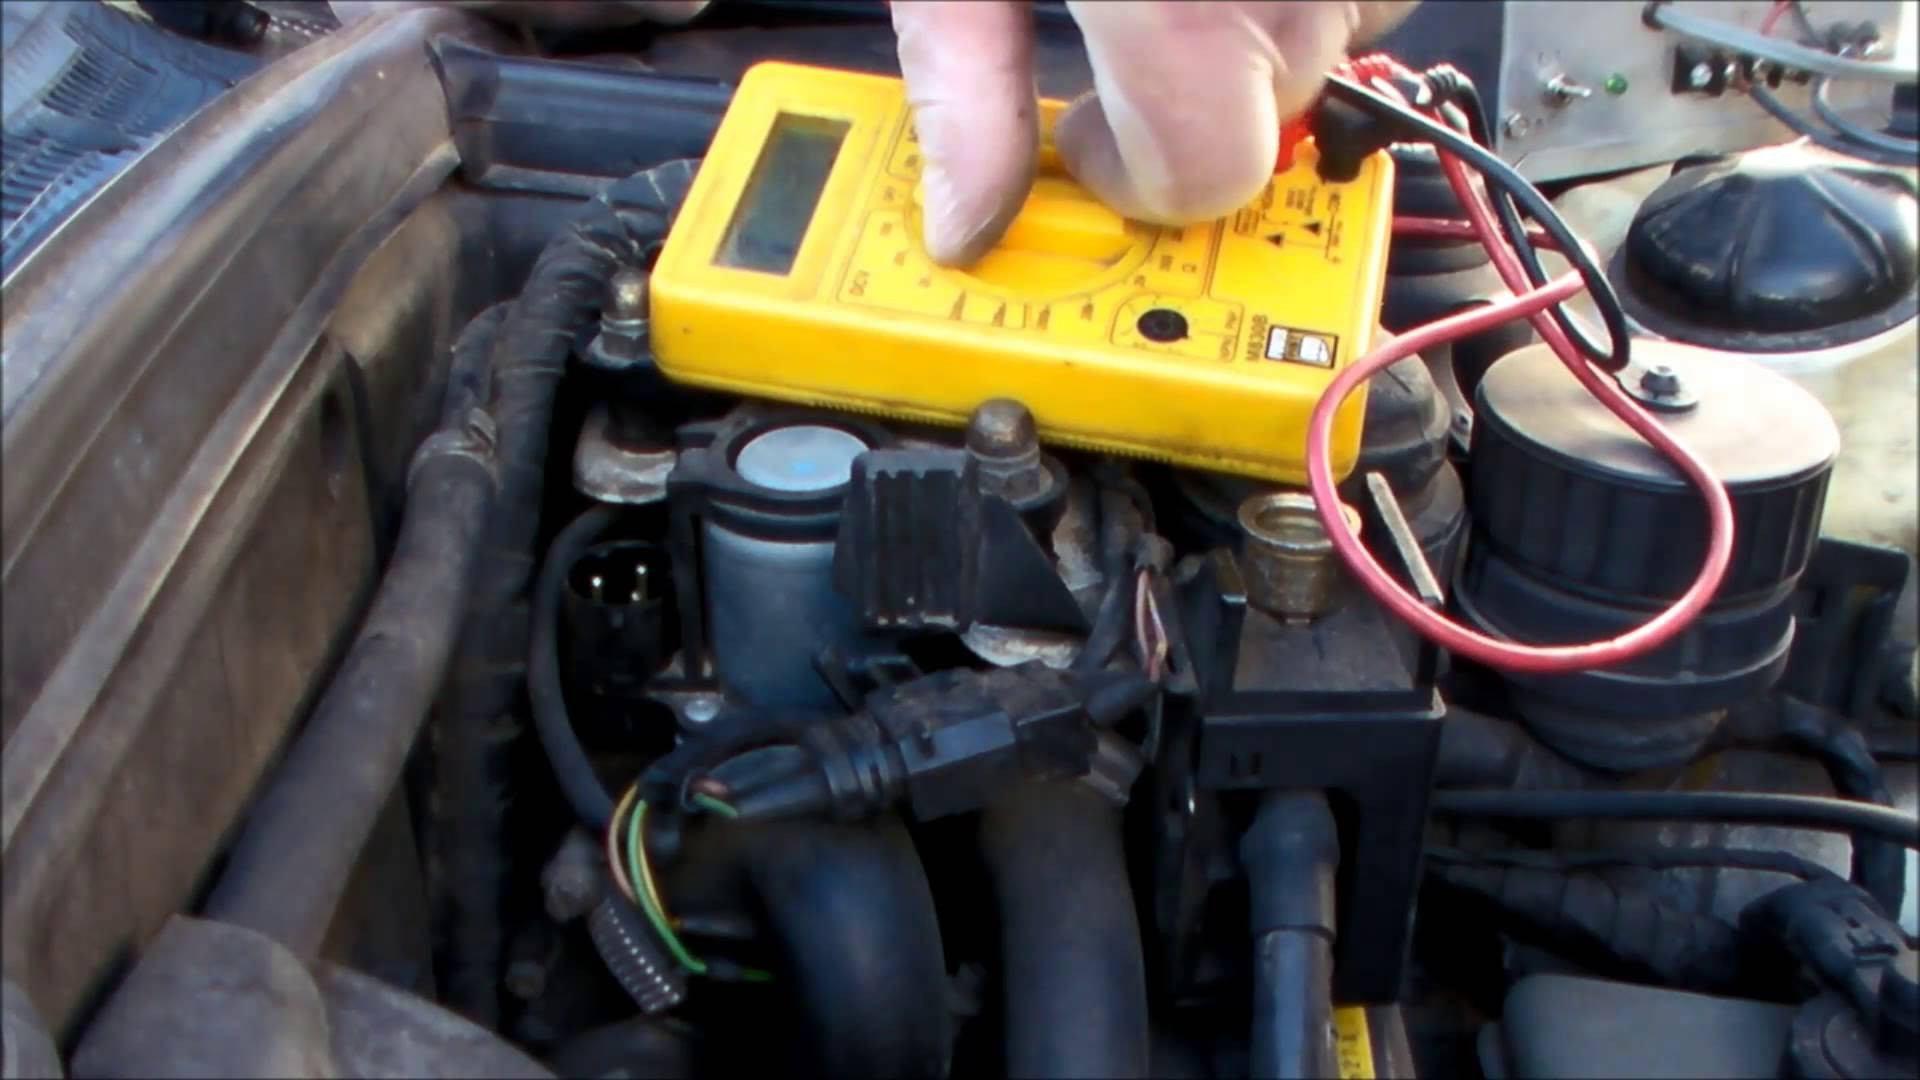 Bmw E34 Engine Diagram 5 Series History And Specifications E31 E32 Heater Valve Test Troubleshooting Of